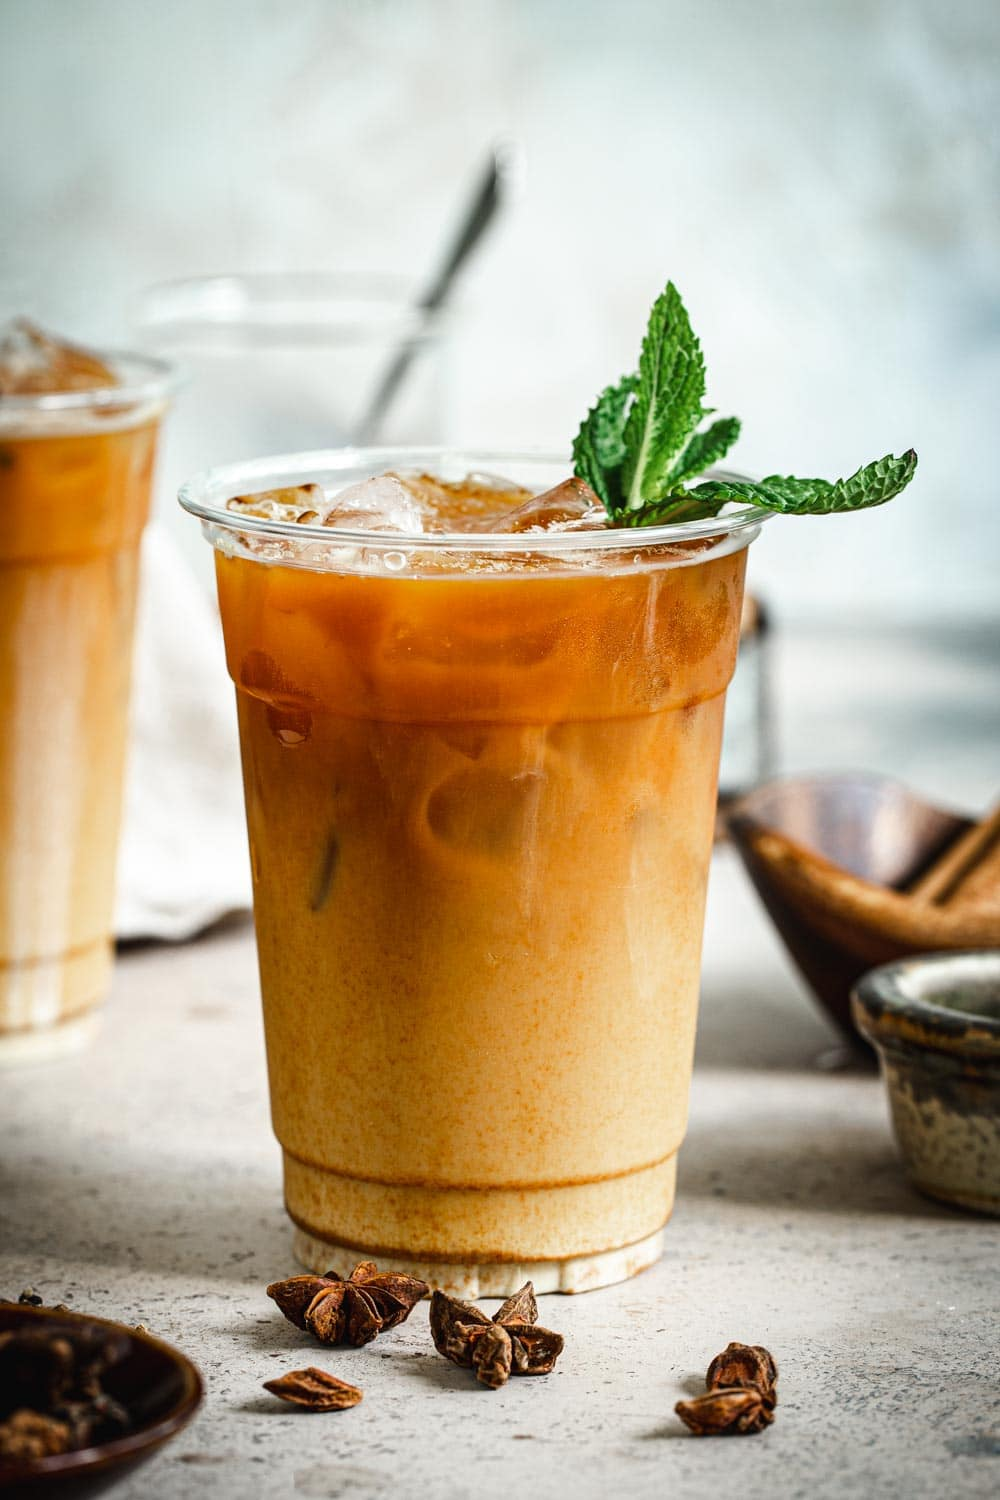 homemade thai iced tea in plastic cup with mint leaves